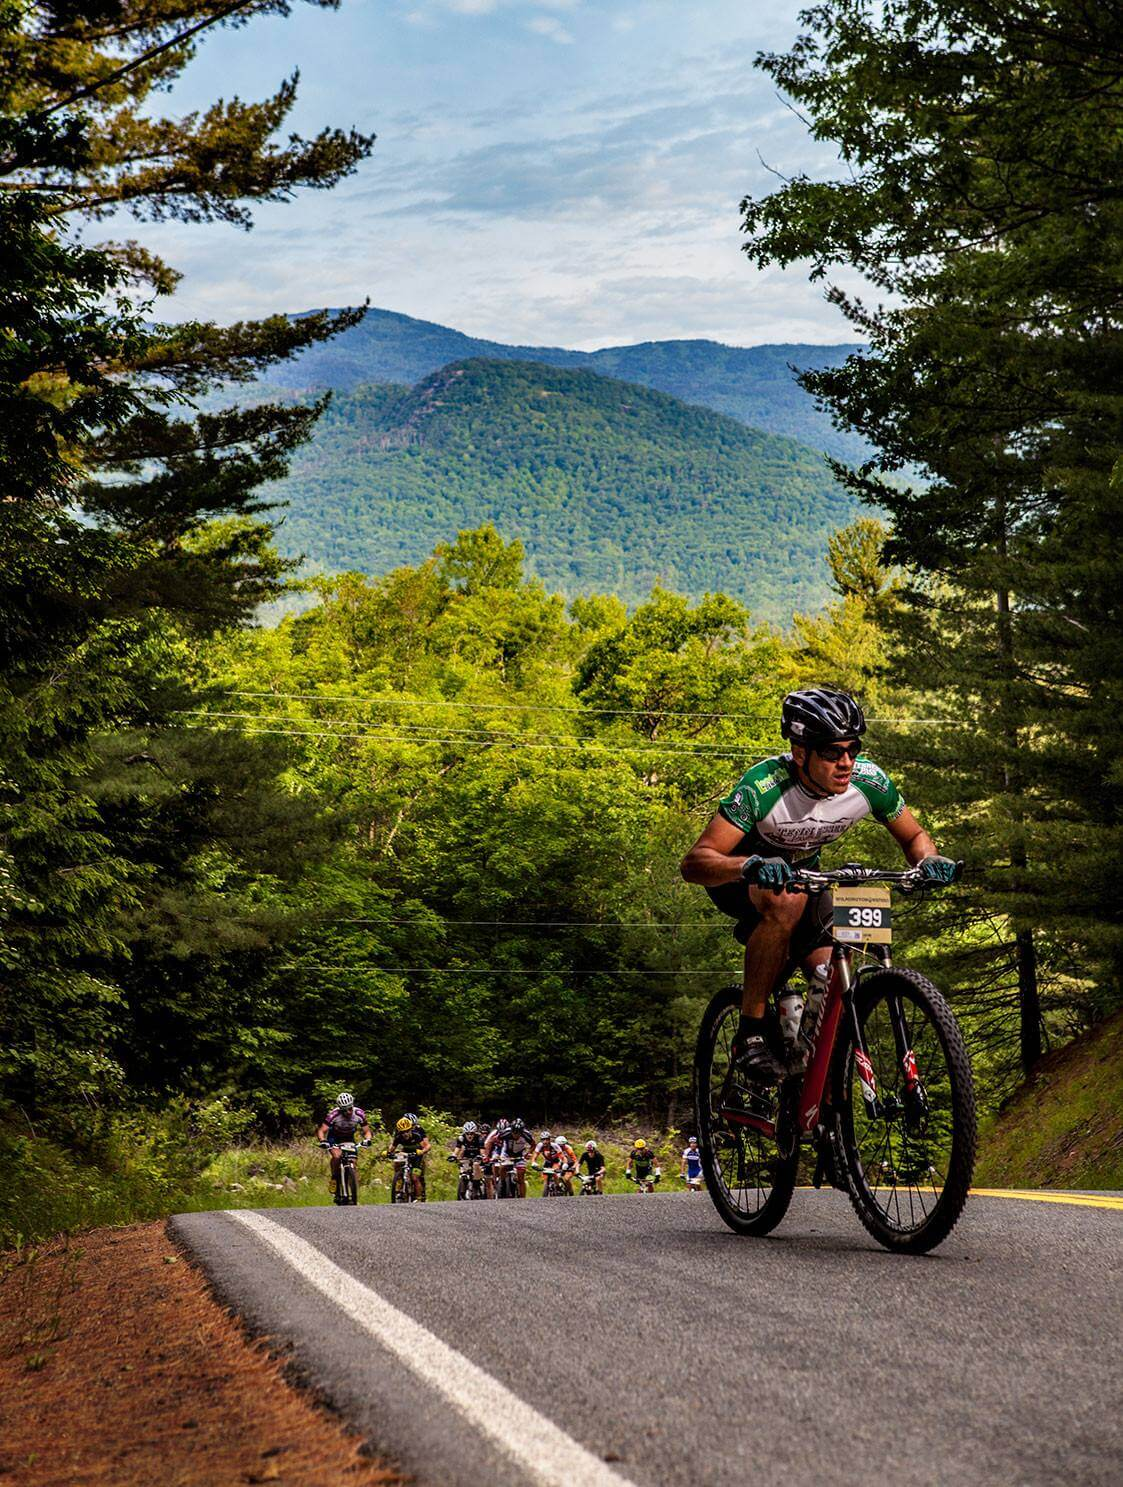 Wilmington Whiteface Mountain Biking Festival with Adirondacks in the background